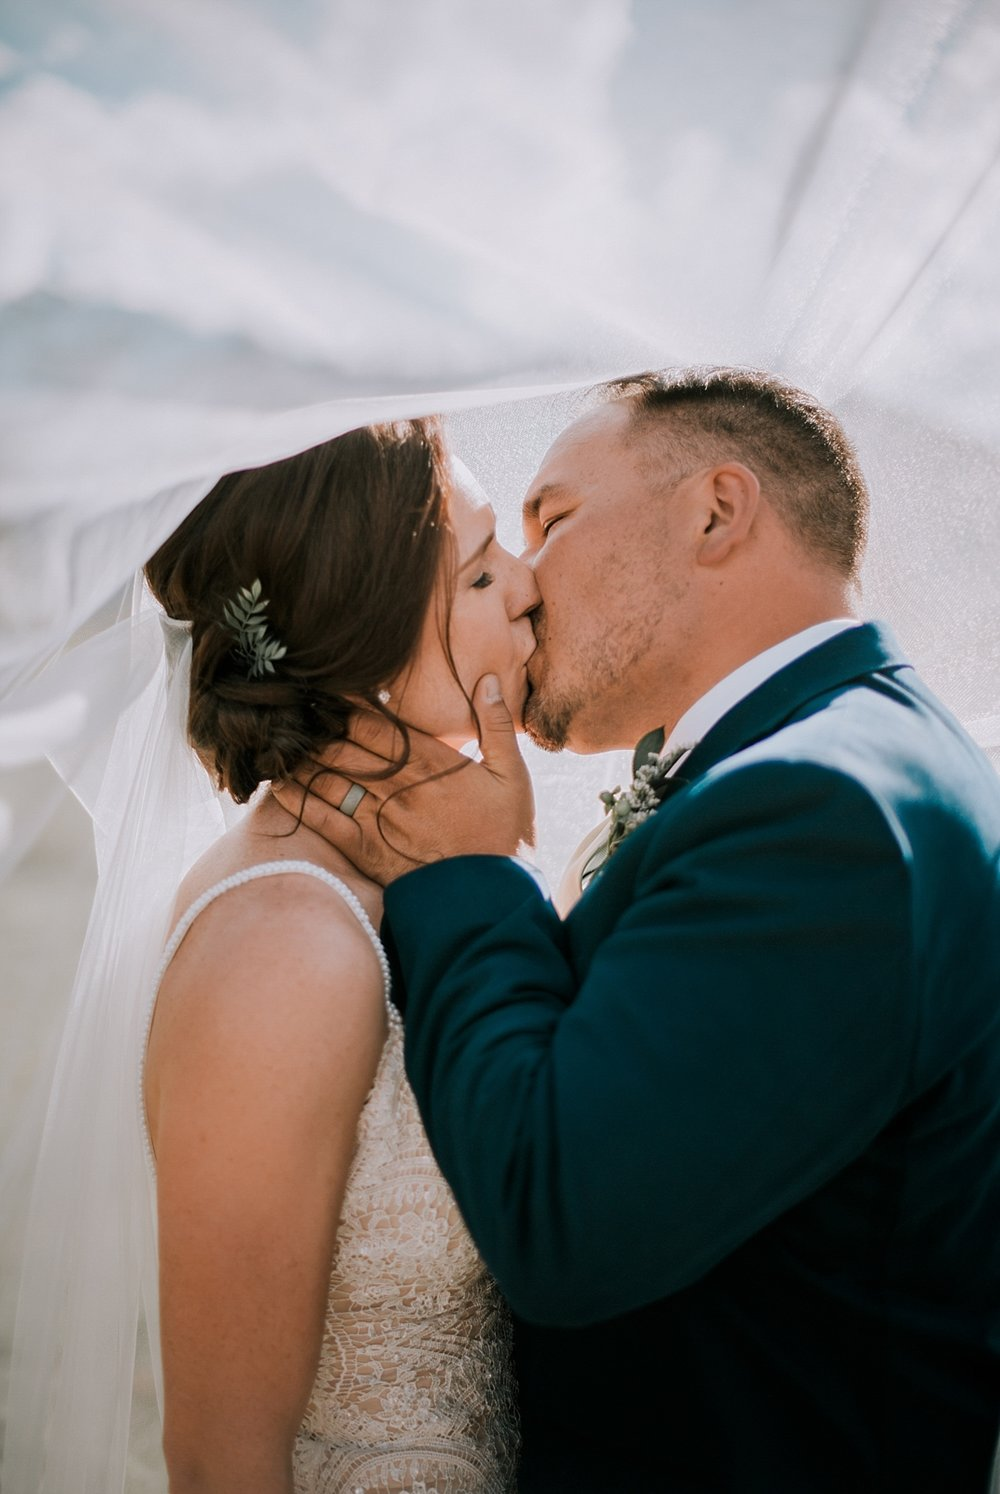 bride and groom breckenridge colorado, breckenridge colorado wedding, breckenridge colorado wedding photographer, the church at agape outpost wedding, agape outpost wedding photographer